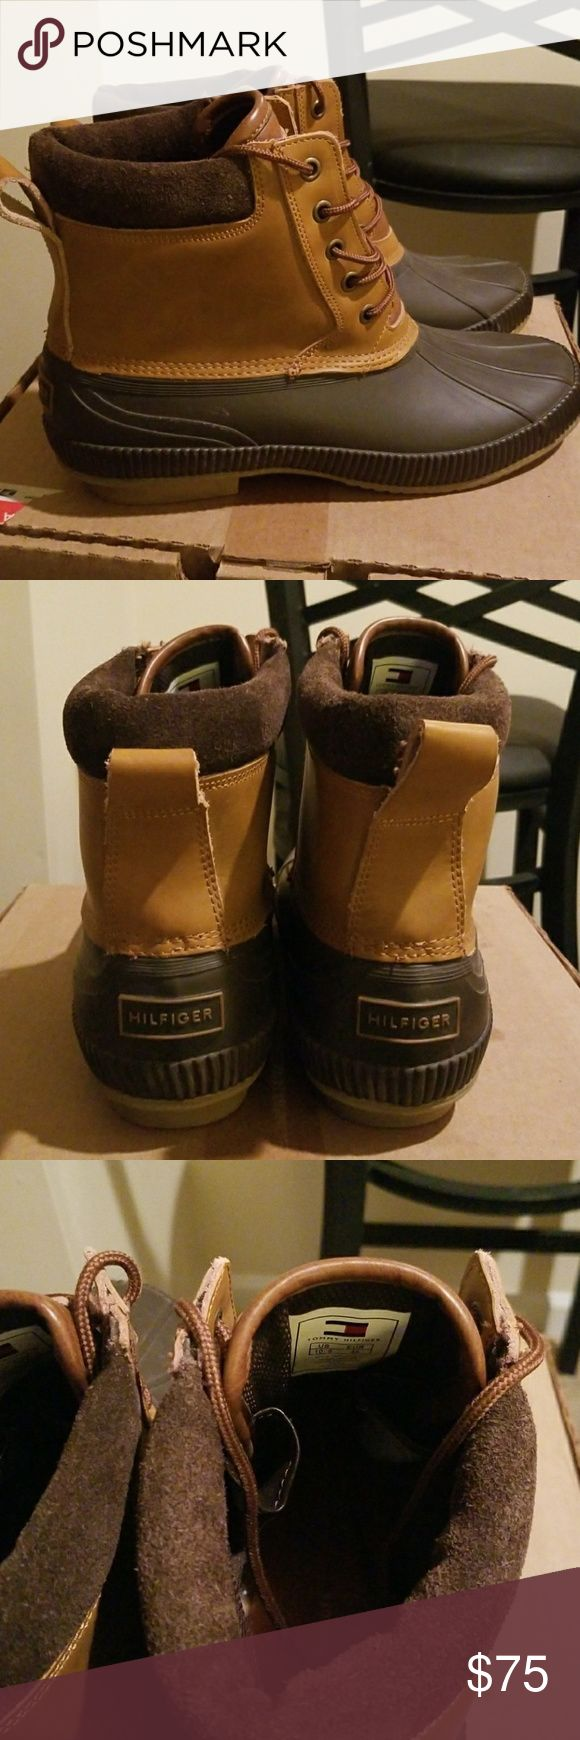 Tommy Hilfiger Duck Boots For sale are a pair of NEW Tommy Hilfiger Duck boots. These shoes have only been worn to try on. (I bought them from poshmark and realized I bought the wrong size!) THEY are in fantastic condition and would be a great pair of shoes for the winter!   Send me your offers! Tommy Hilfiger Shoes Rain & Snow Boots